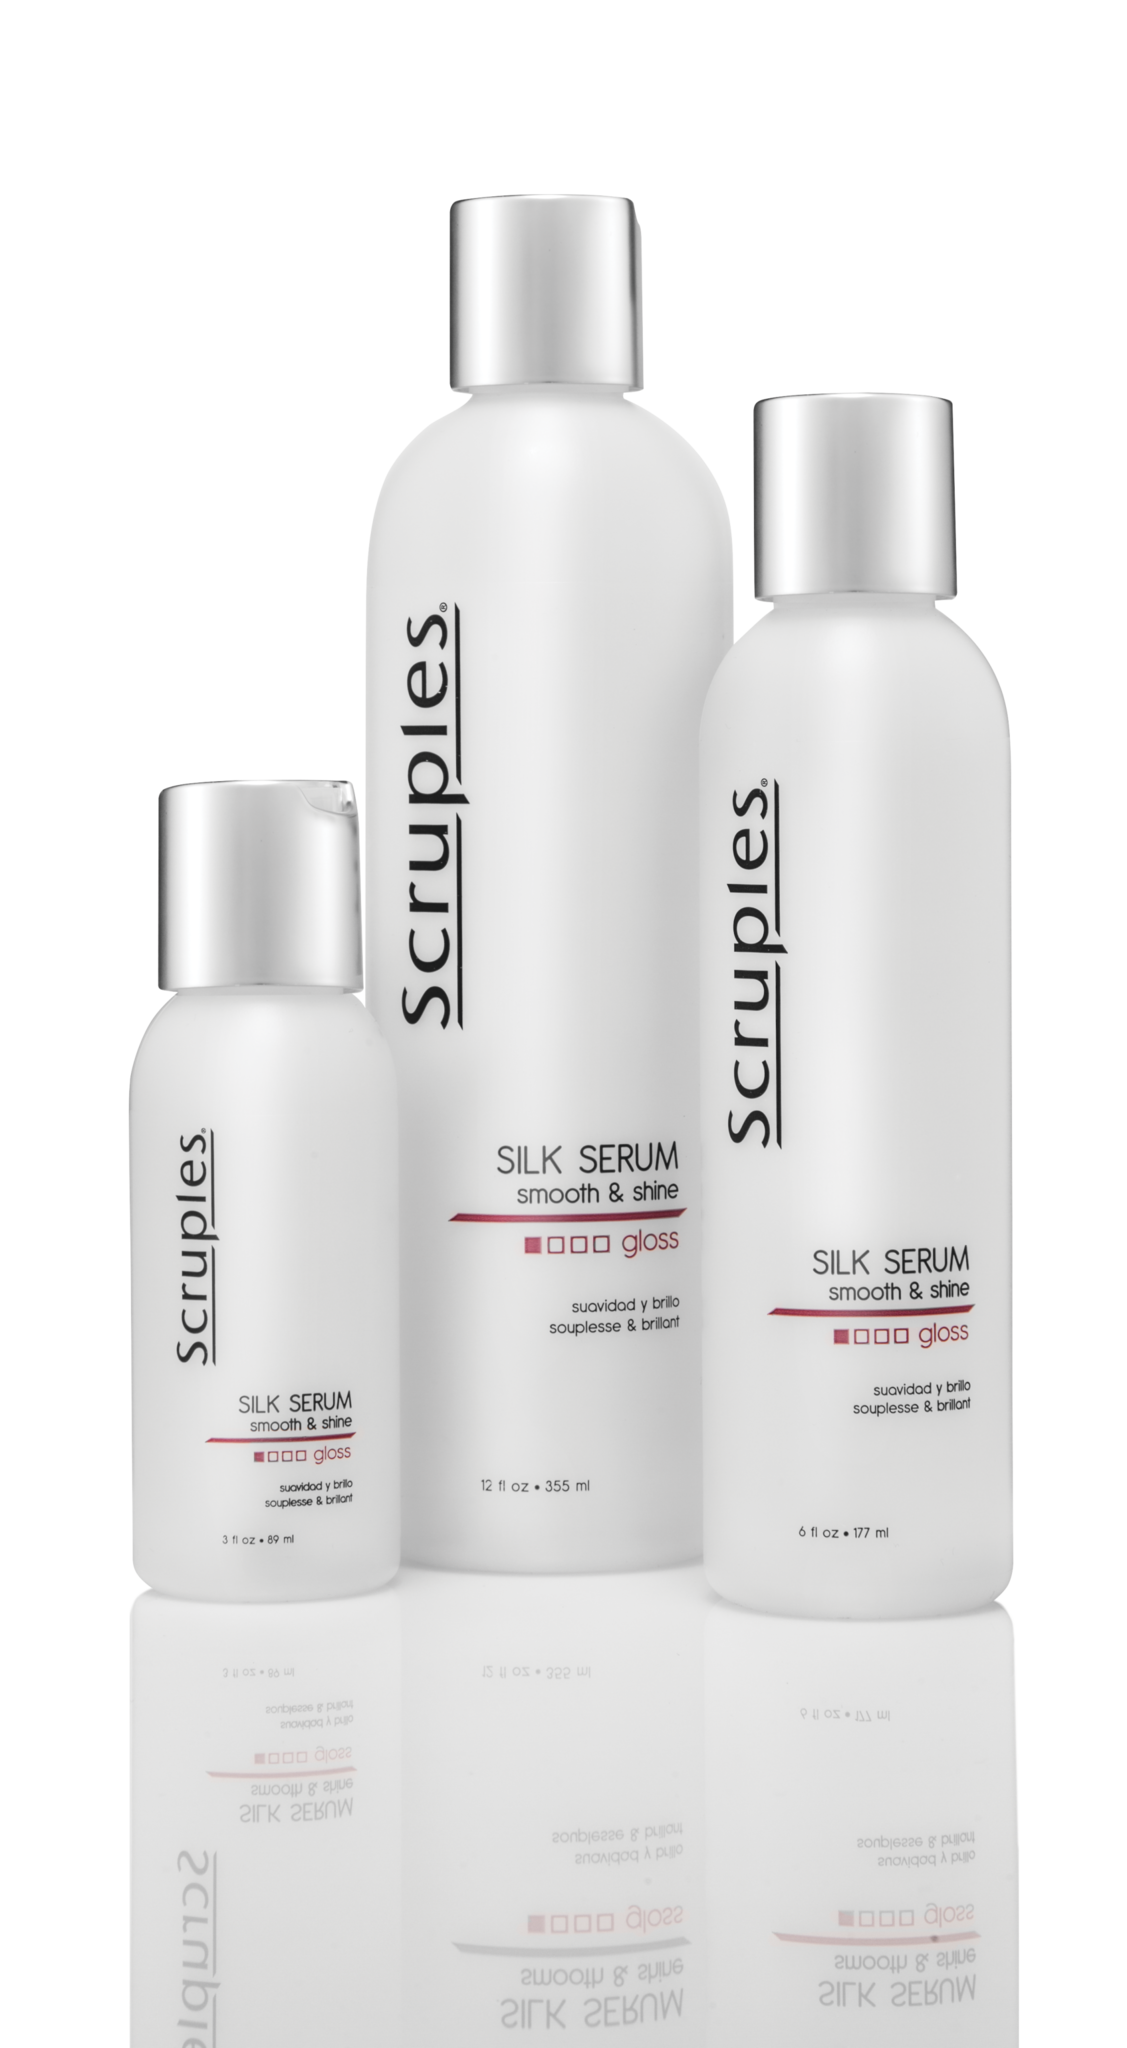 Scruples Introduces Silk Serum for a Flawless Finish